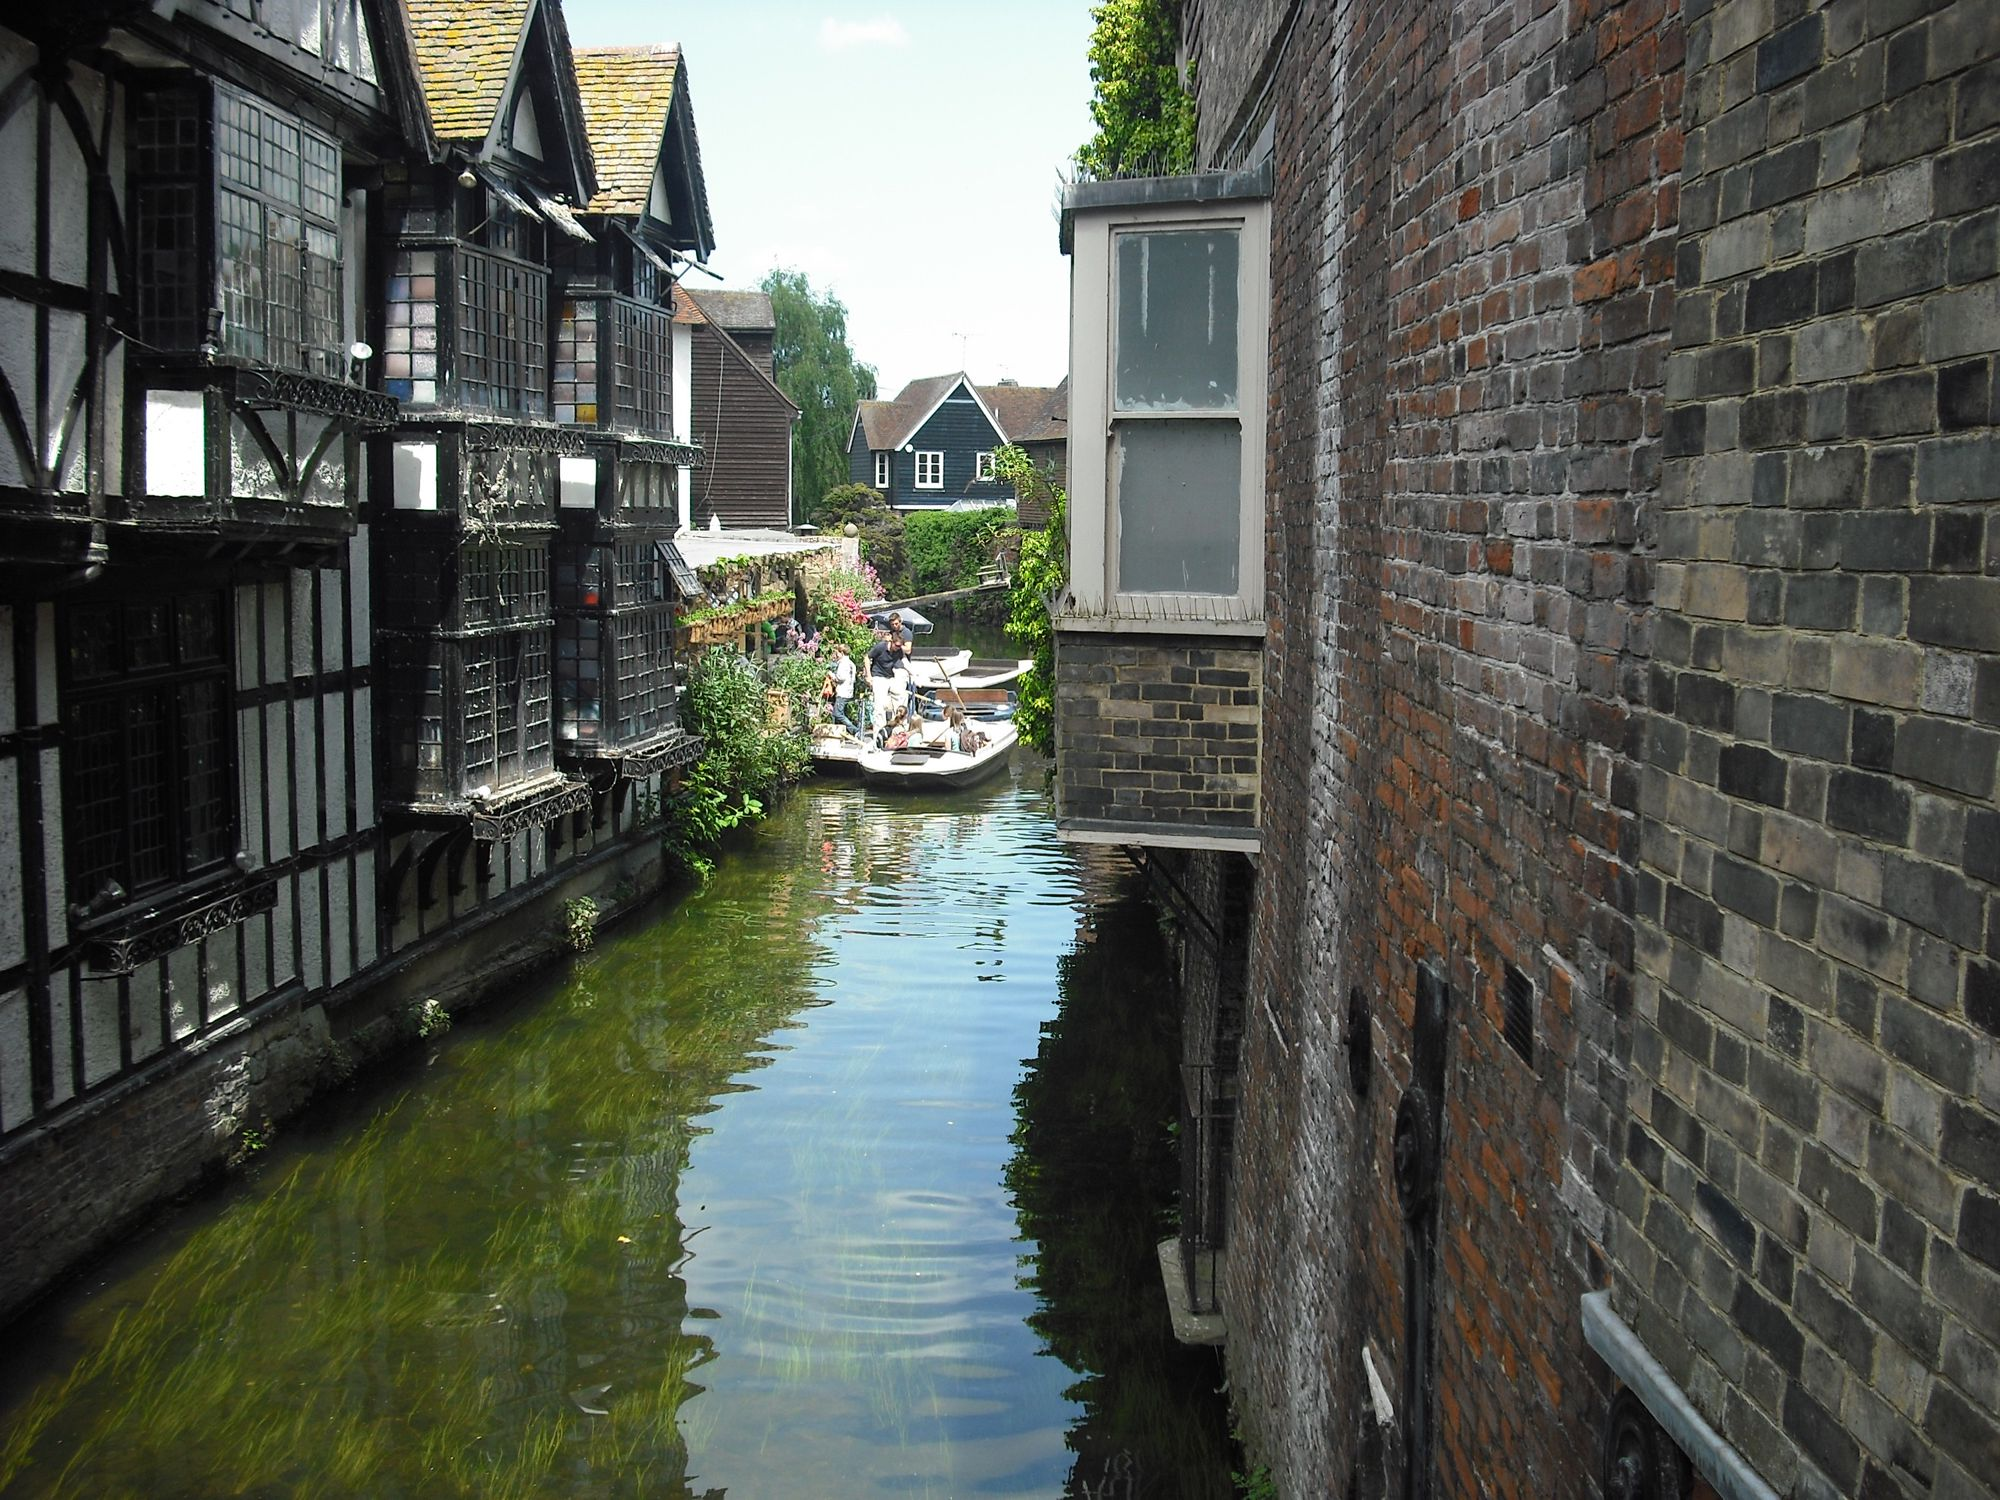 Hotels, B&Bs & Self-Catering in Canterbury